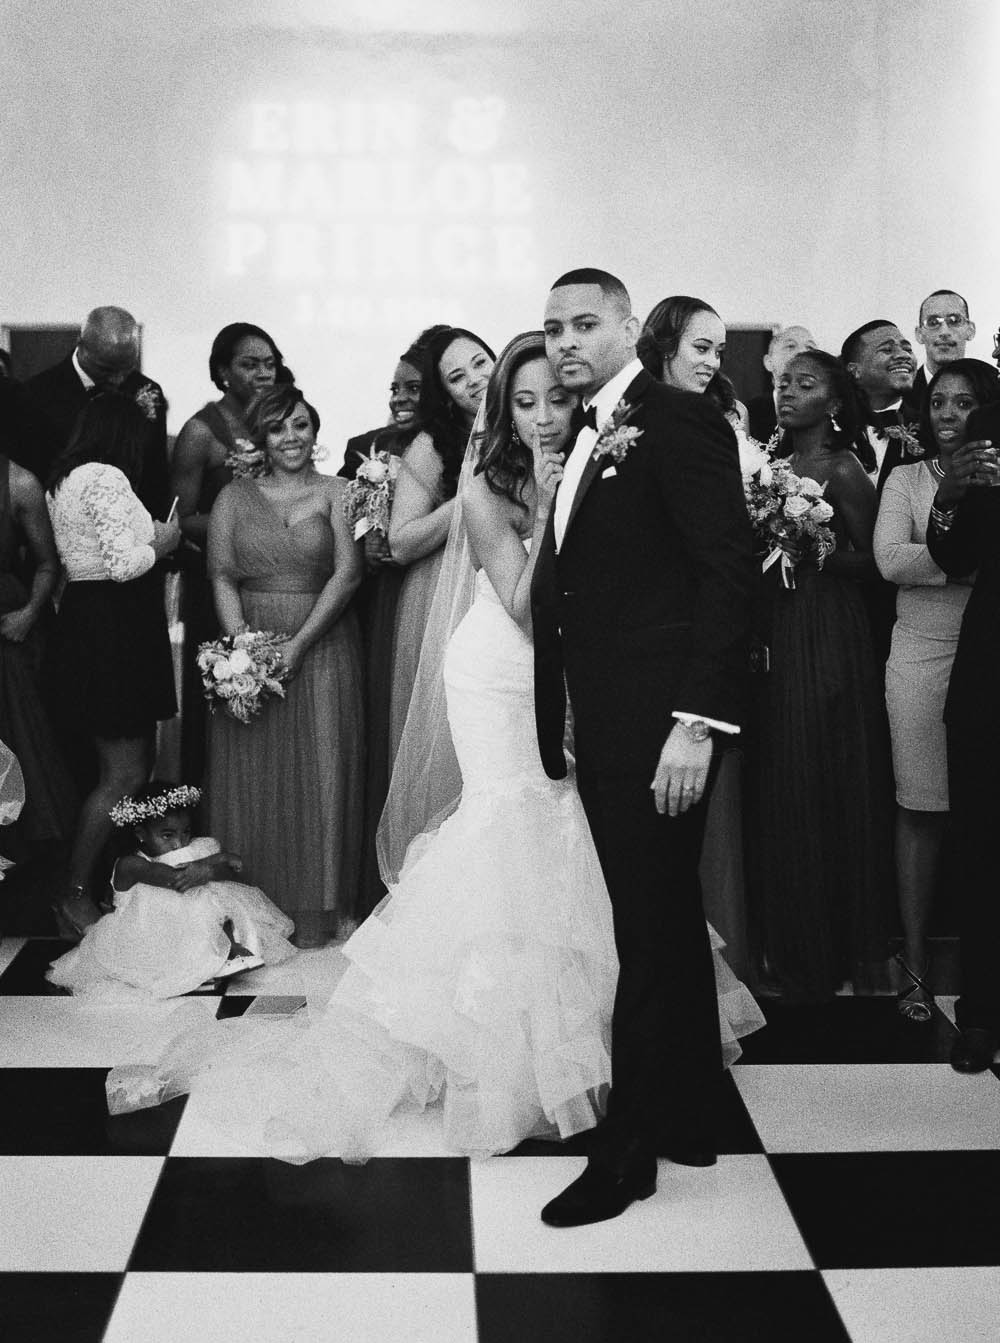 nashville ruby film documentary wedding photographer heartfelt real moments african american wedding munalachi bride ©2016abigailbobophotography-43.jpg